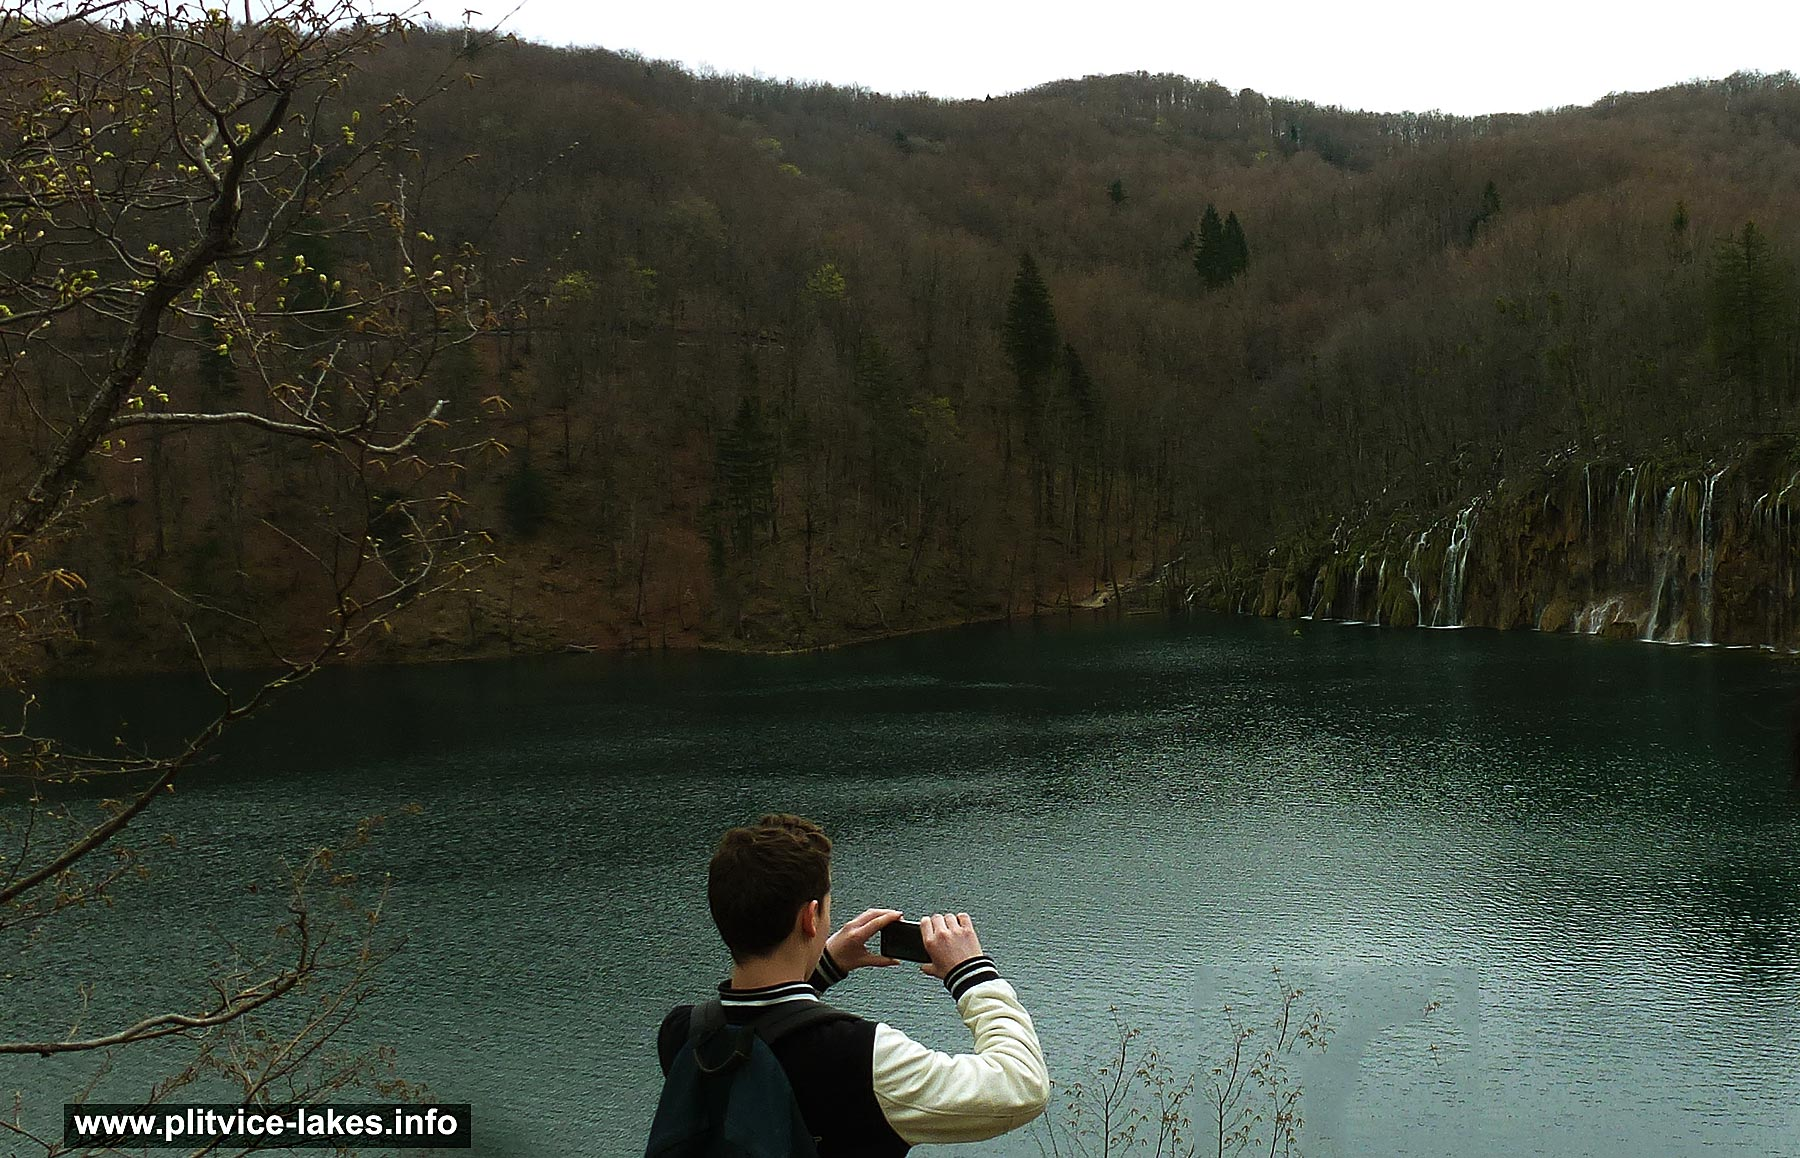 Taking Photo of Pltivice Spring in Lakes Panorama